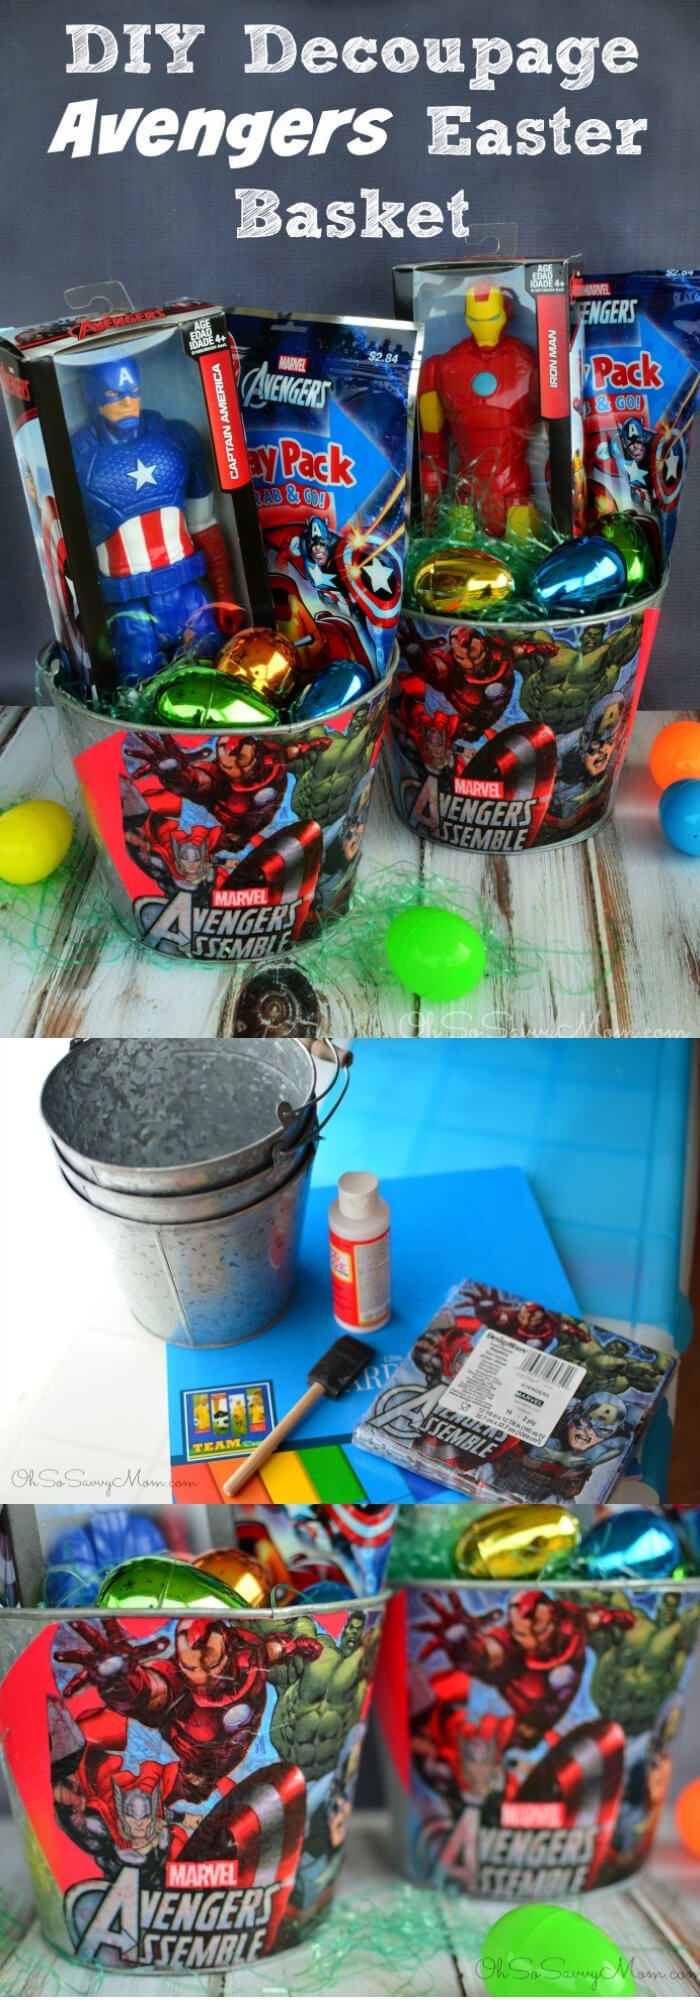 Decoupage DIY Avengers Easter Basket | Fun & Creative Easter Basket Ideas